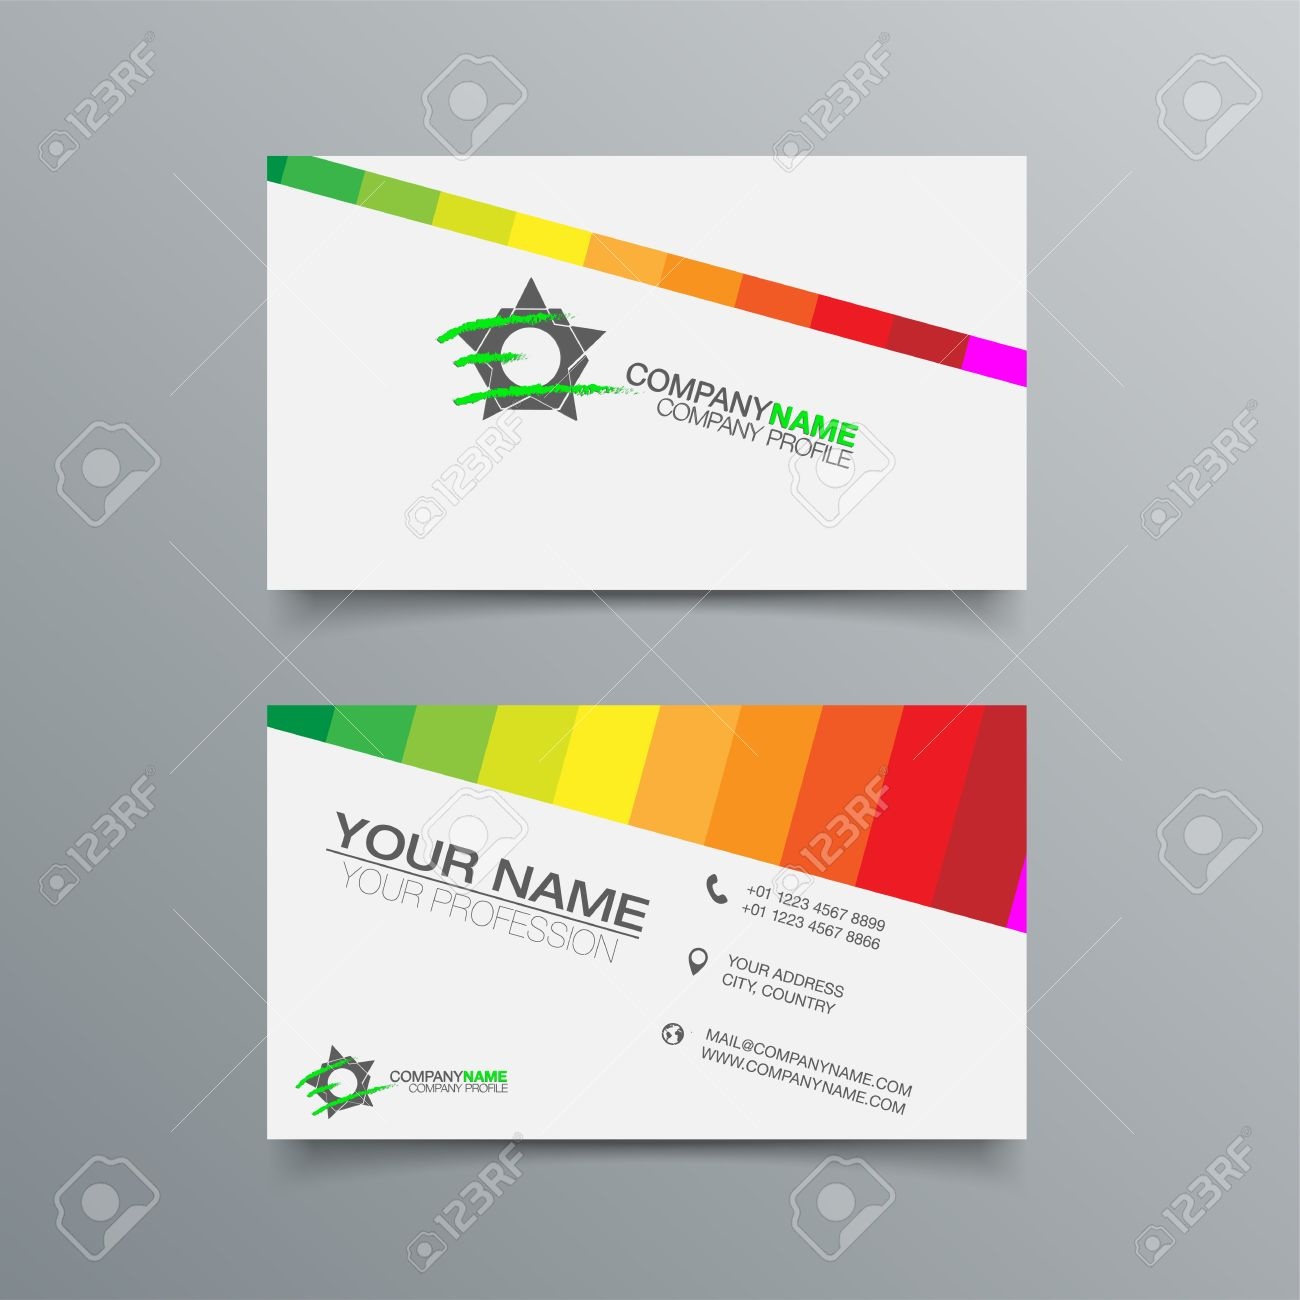 Business card background designs free download images card business card background designs choice image free business cards business card background design template stock vector magicingreecefo Images